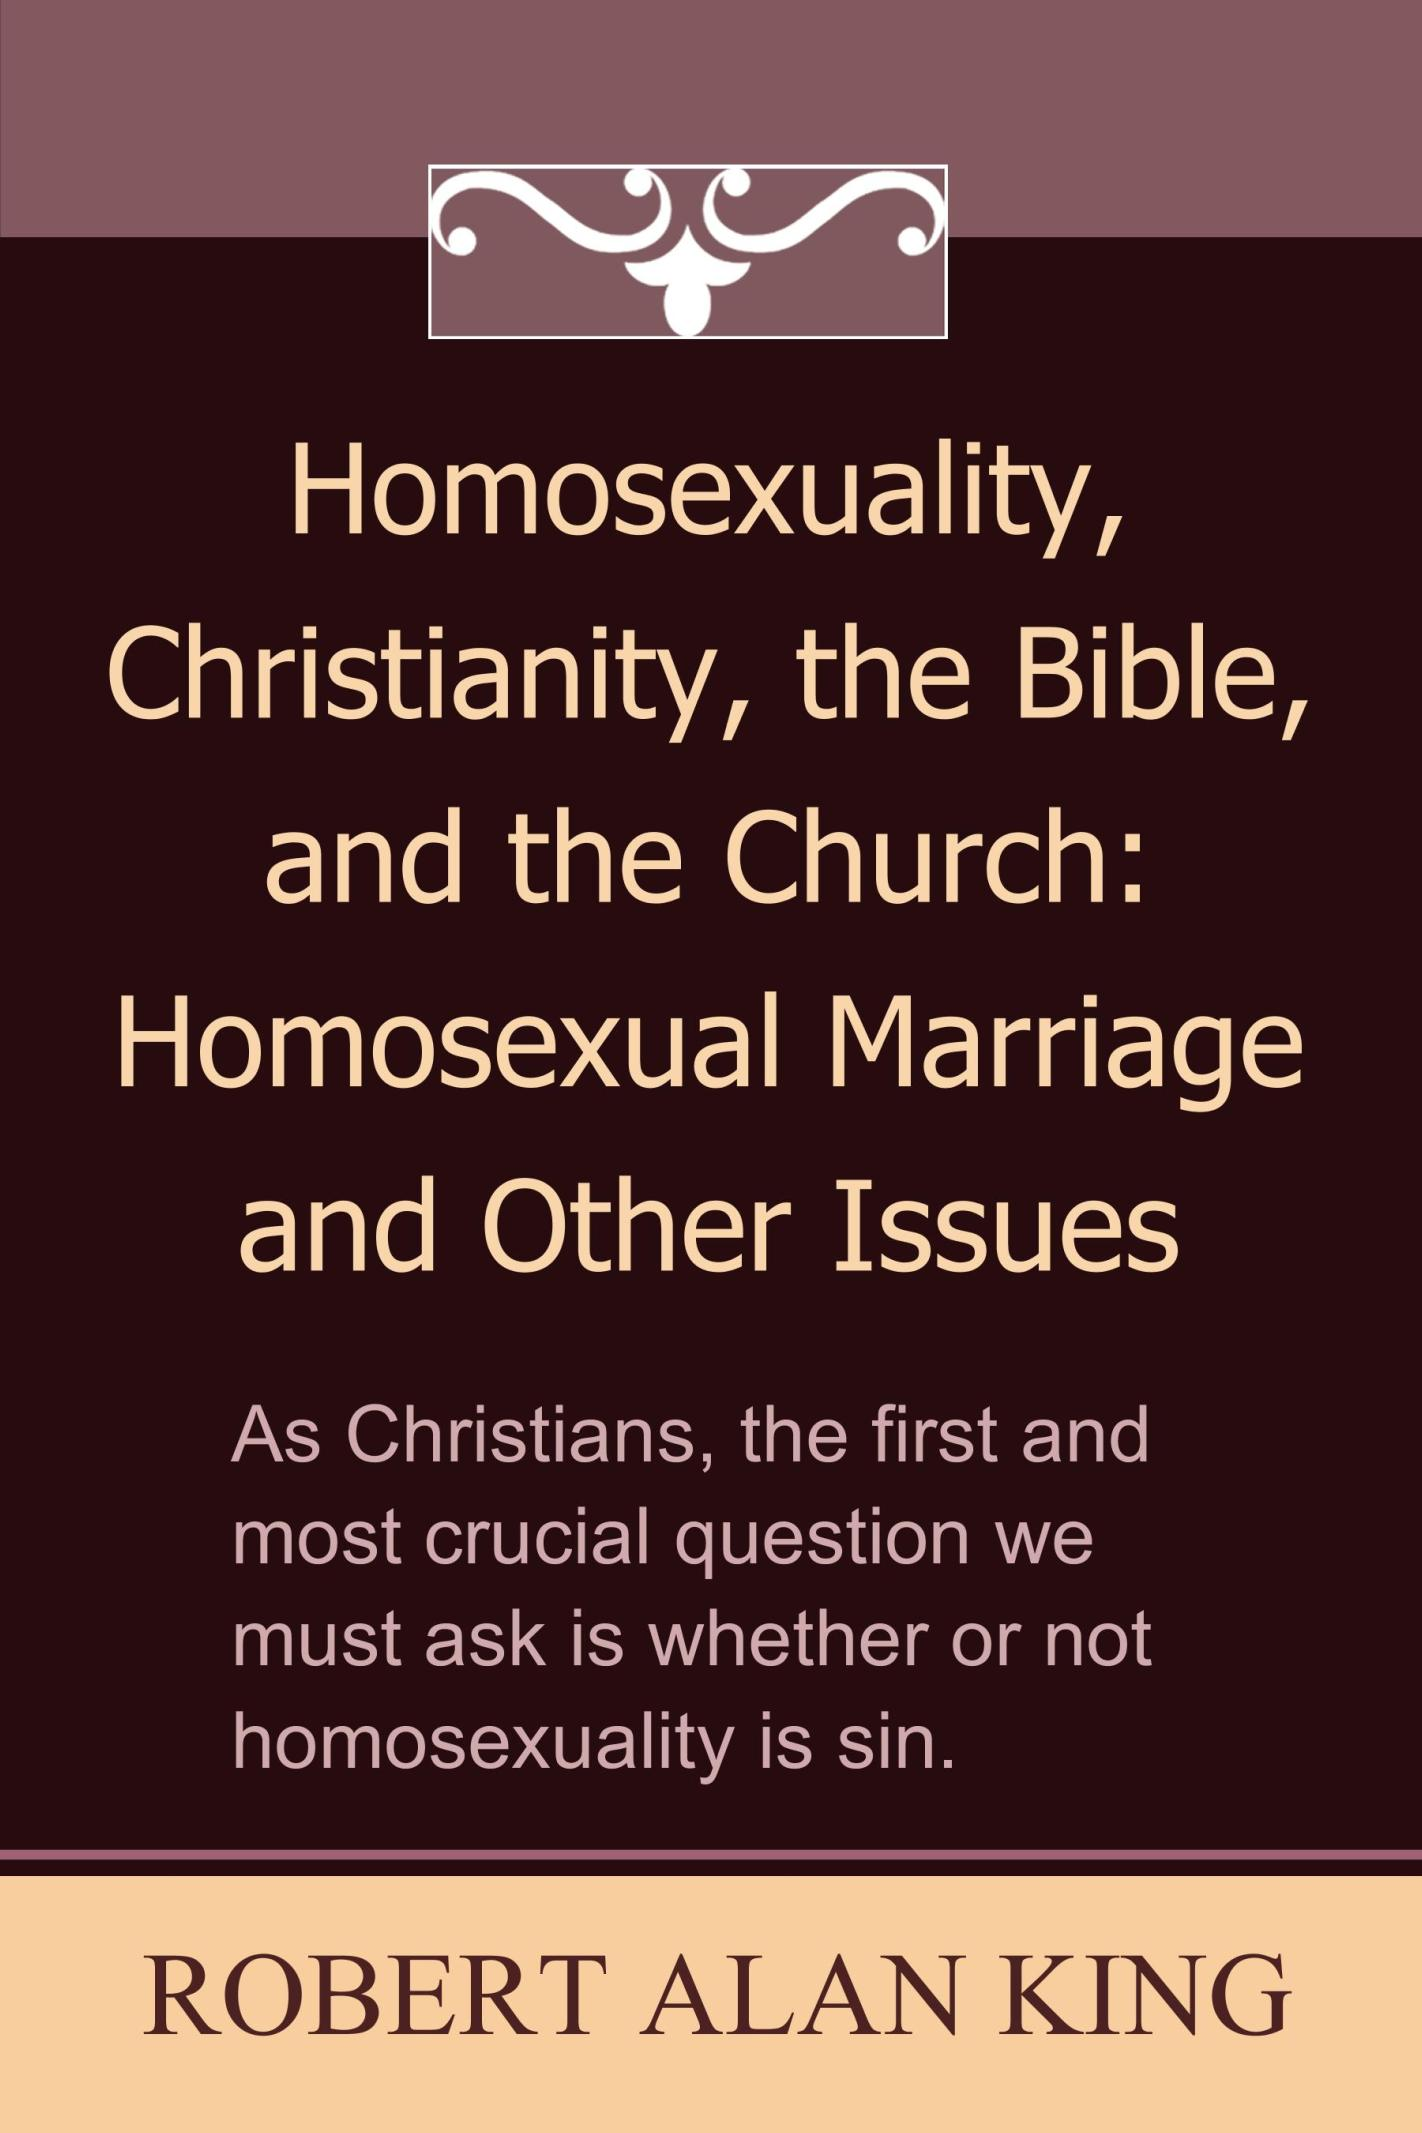 homosexuality and christianity Read this full essay on homosexuality and christianity the way people ultimately view homosexuality, whether in religion, politics or modern popular culture.